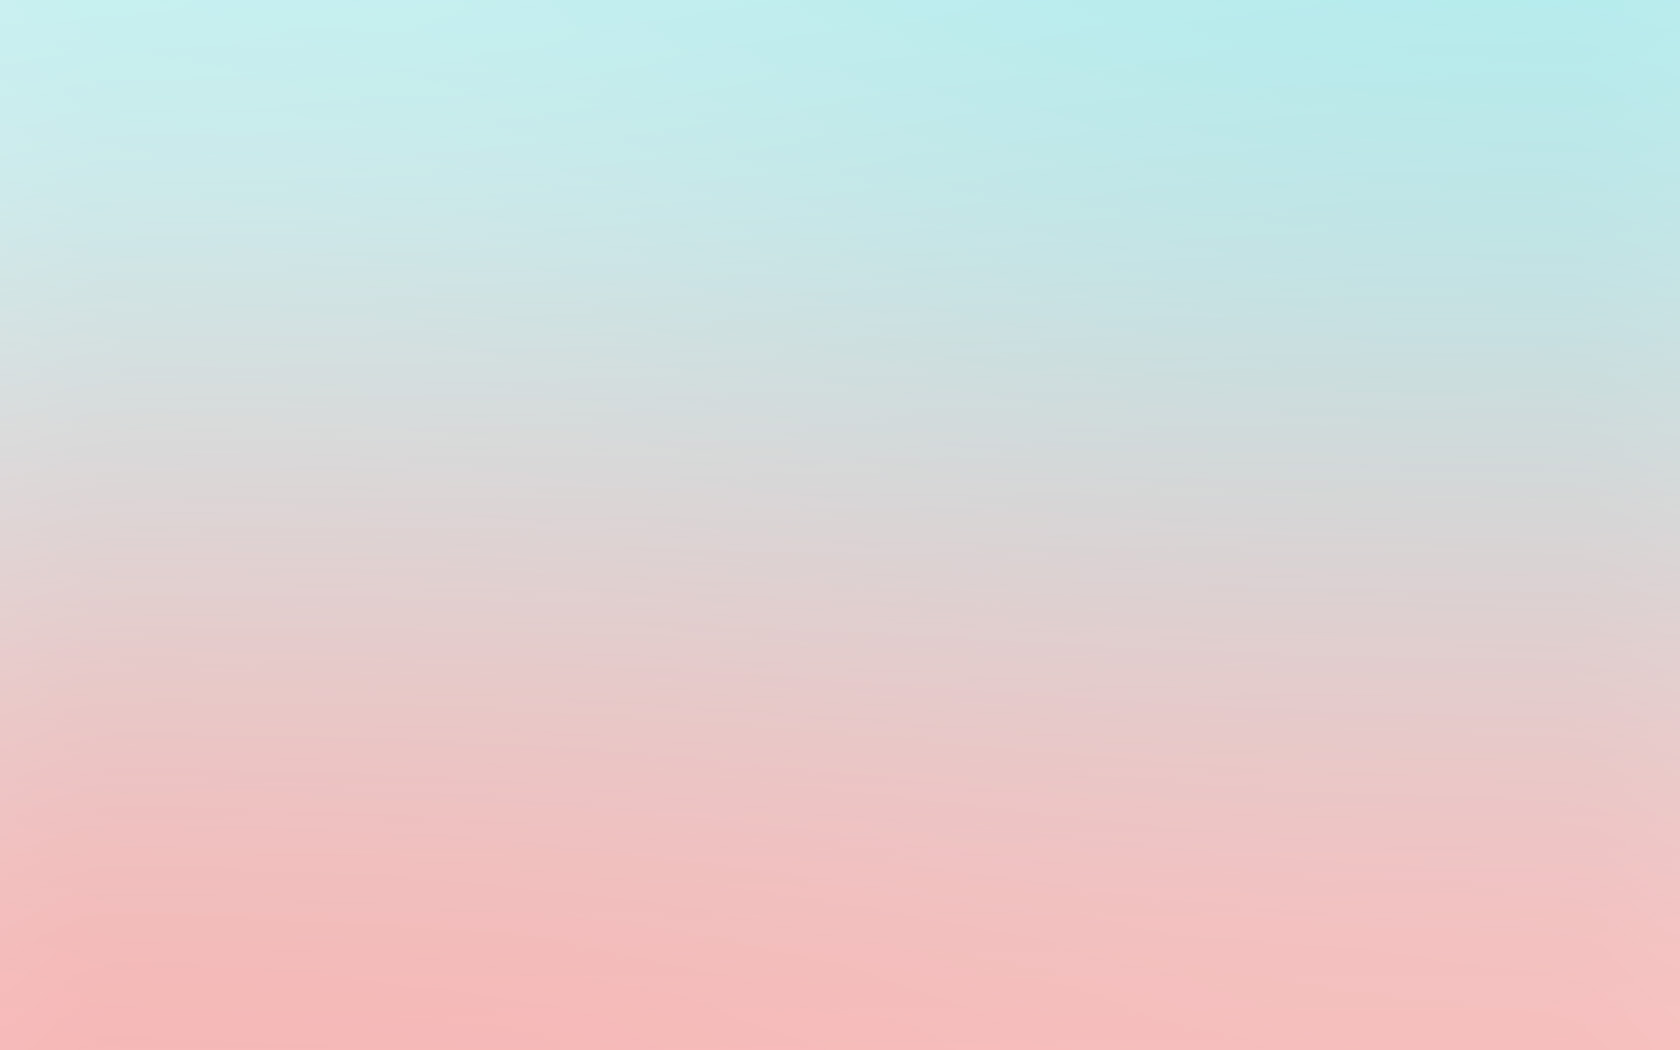 Sm40 Blue Red Soft Pastel Blur Gradation Wallpaper